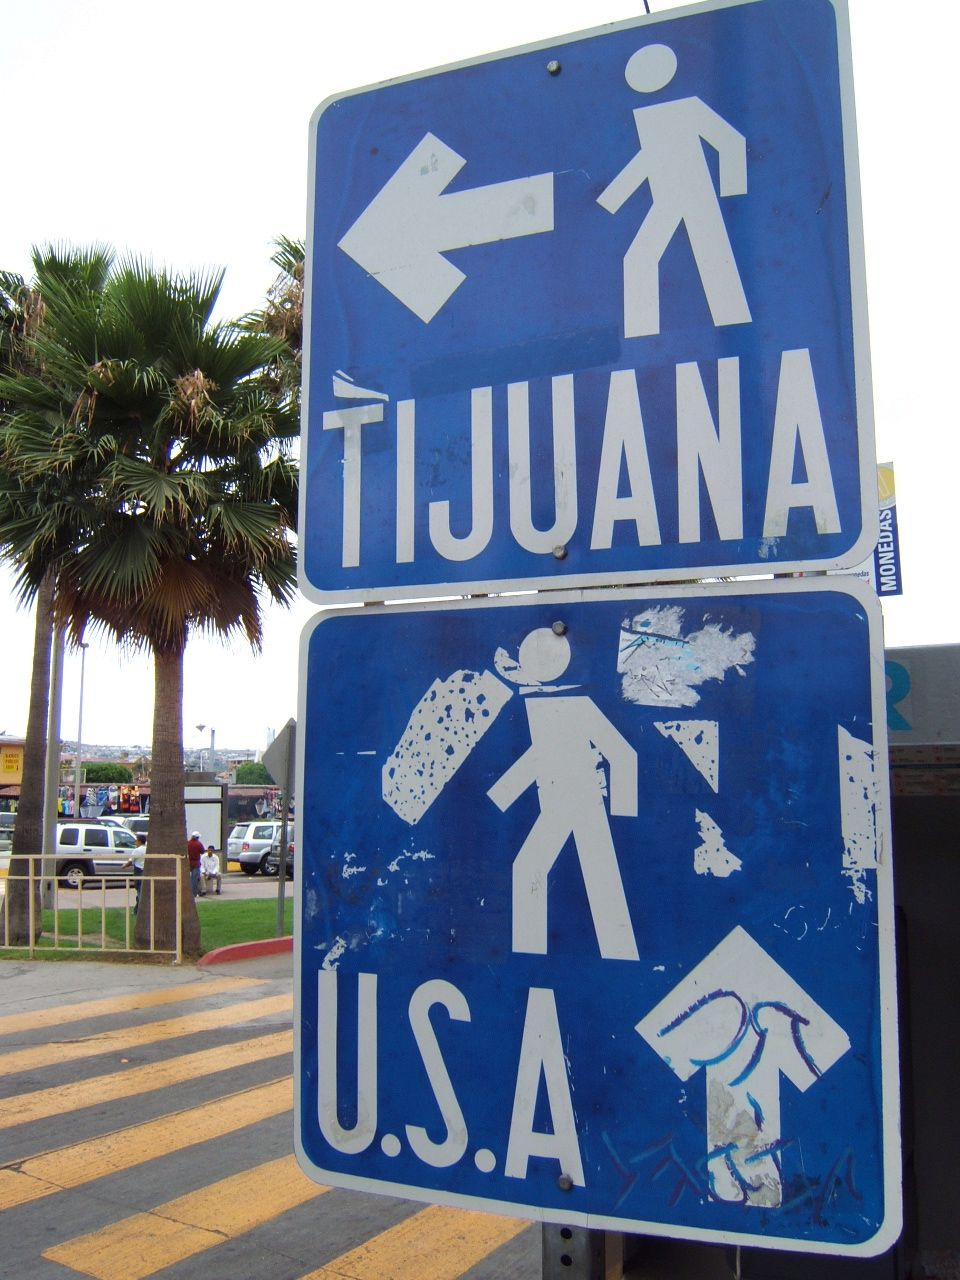 pedestrian_border_crossing_sign_tijuana_mexico.jpg